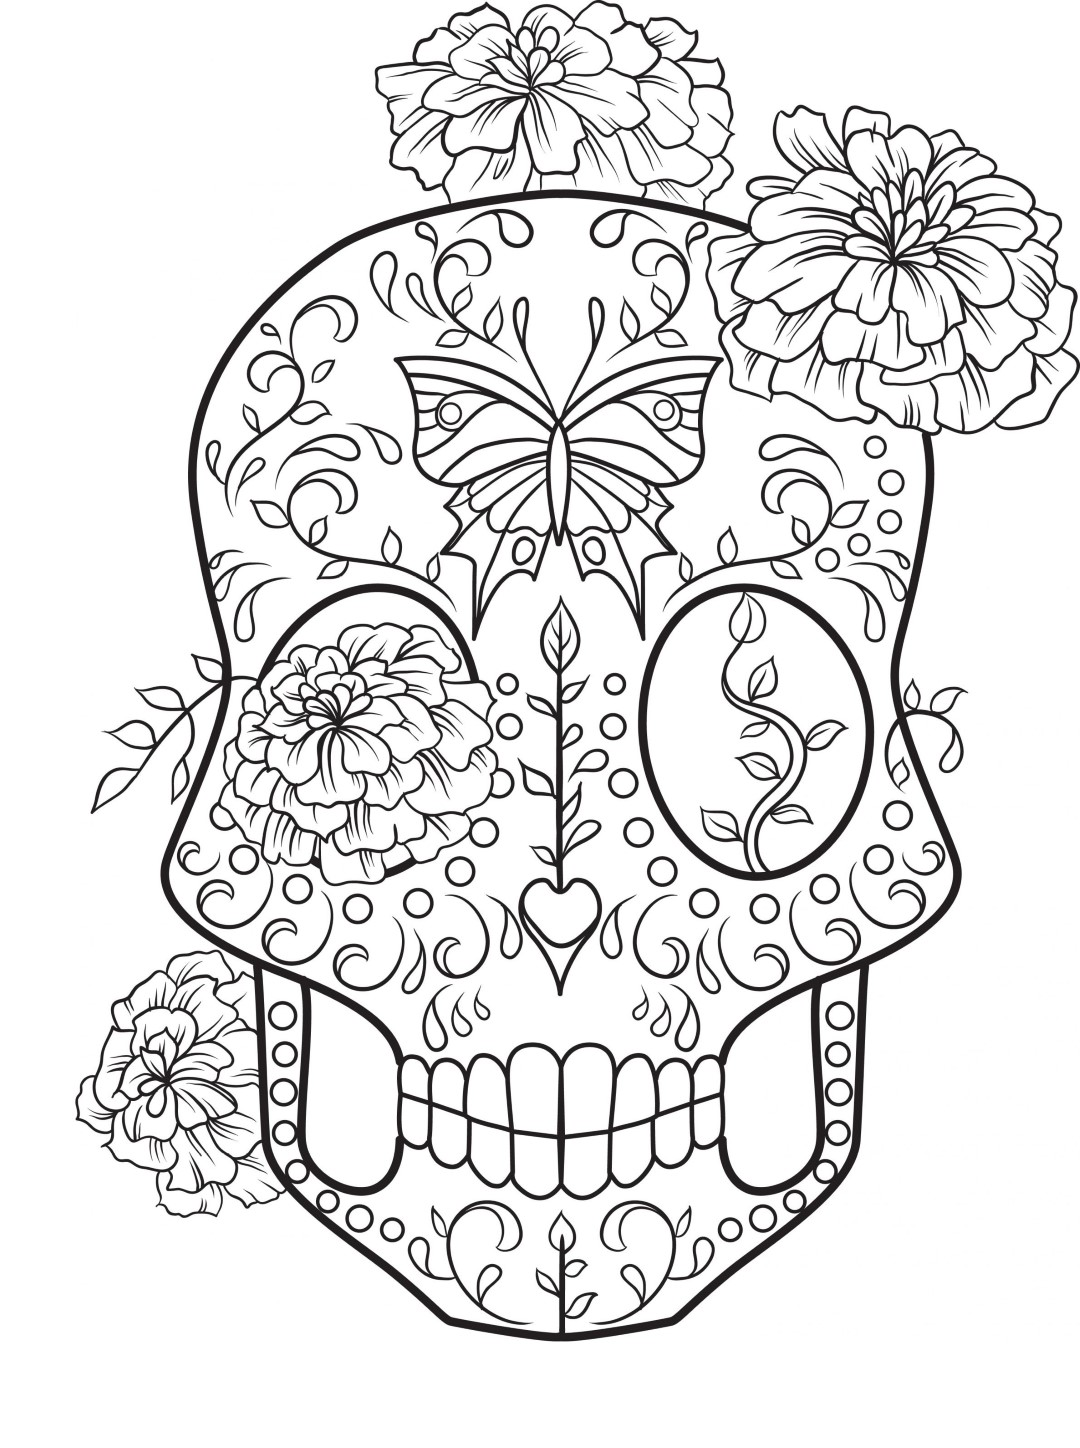 Sugar Skull with Flowers to Color